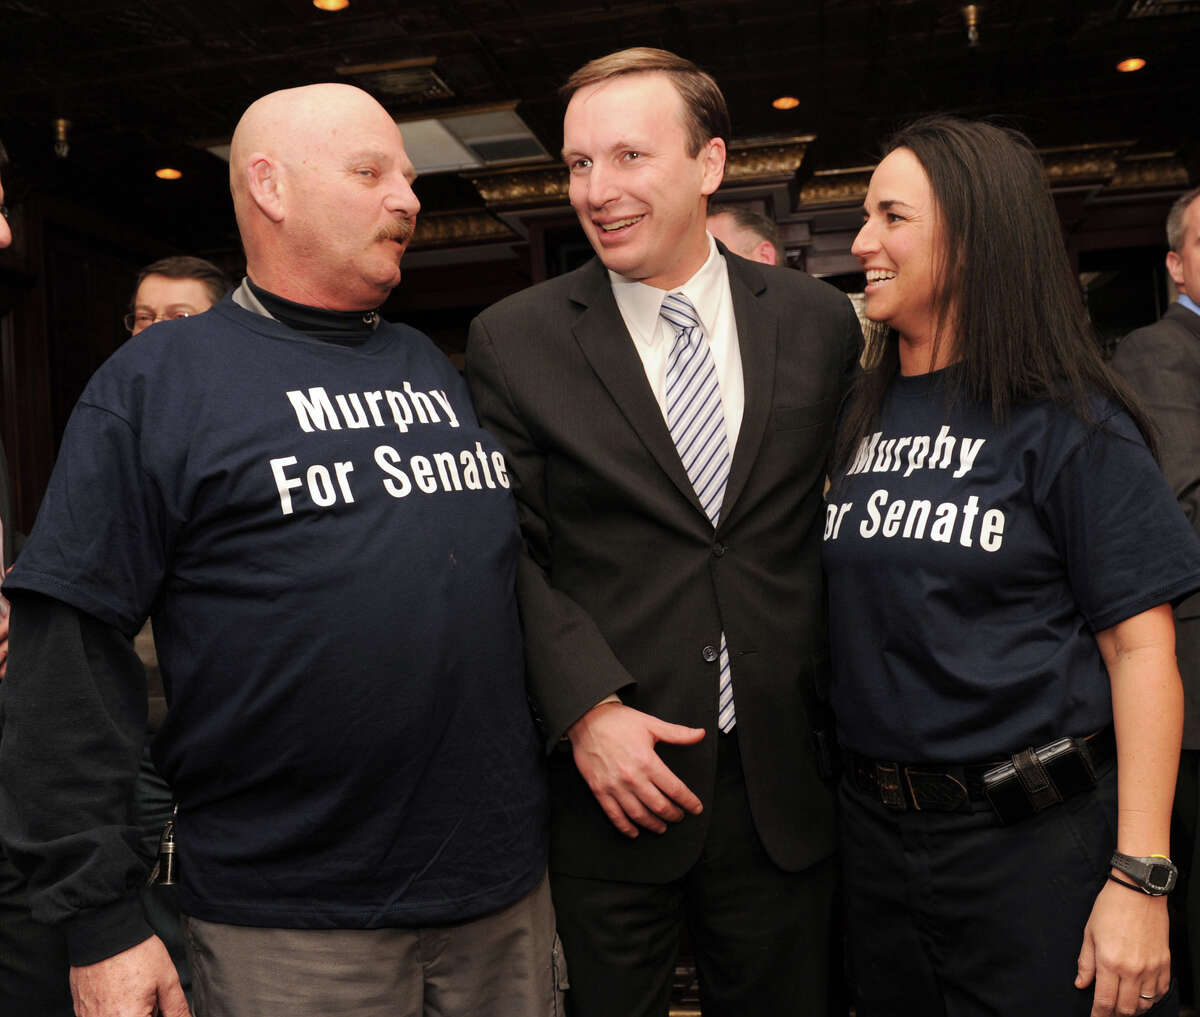 Congressman Chris Murphy, center, with supporters, Ray Soucy, left of Naugatuck and Lisamarie Fantano of East Hampton, at a press conference Thursday where Murphy announced his intention to run for the senate seat now held by Joe Lieberman. Photo taken Thursday, January 20, 2011.